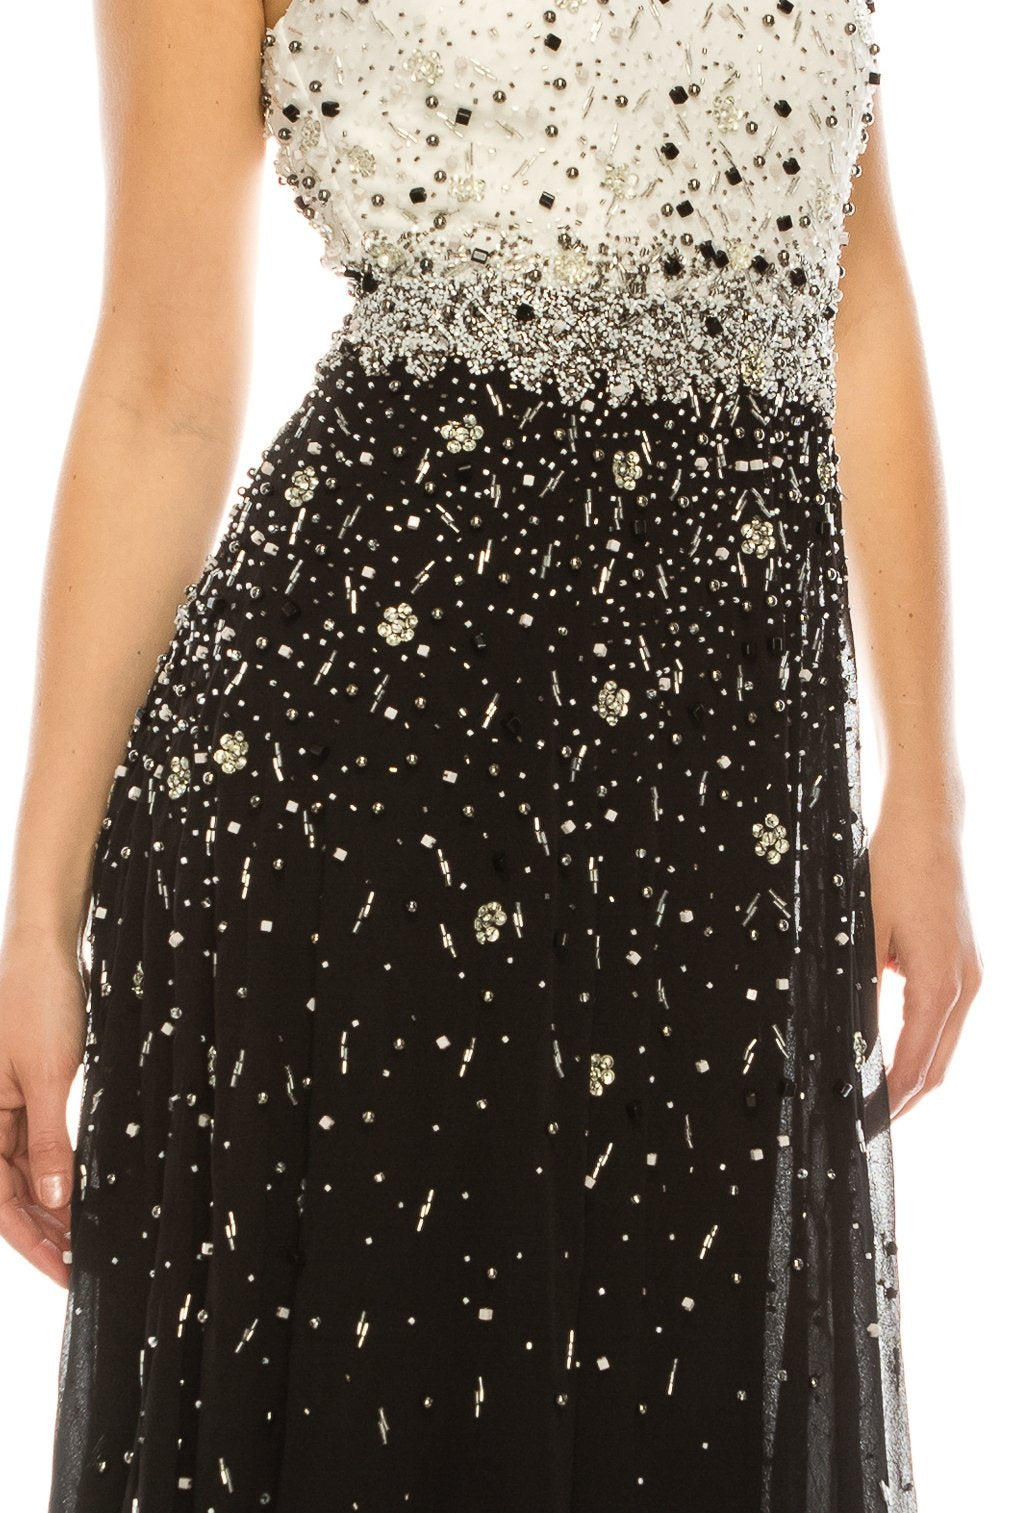 Aidan Mattox Ivory Black Beaded High Square Neck Evening Dress